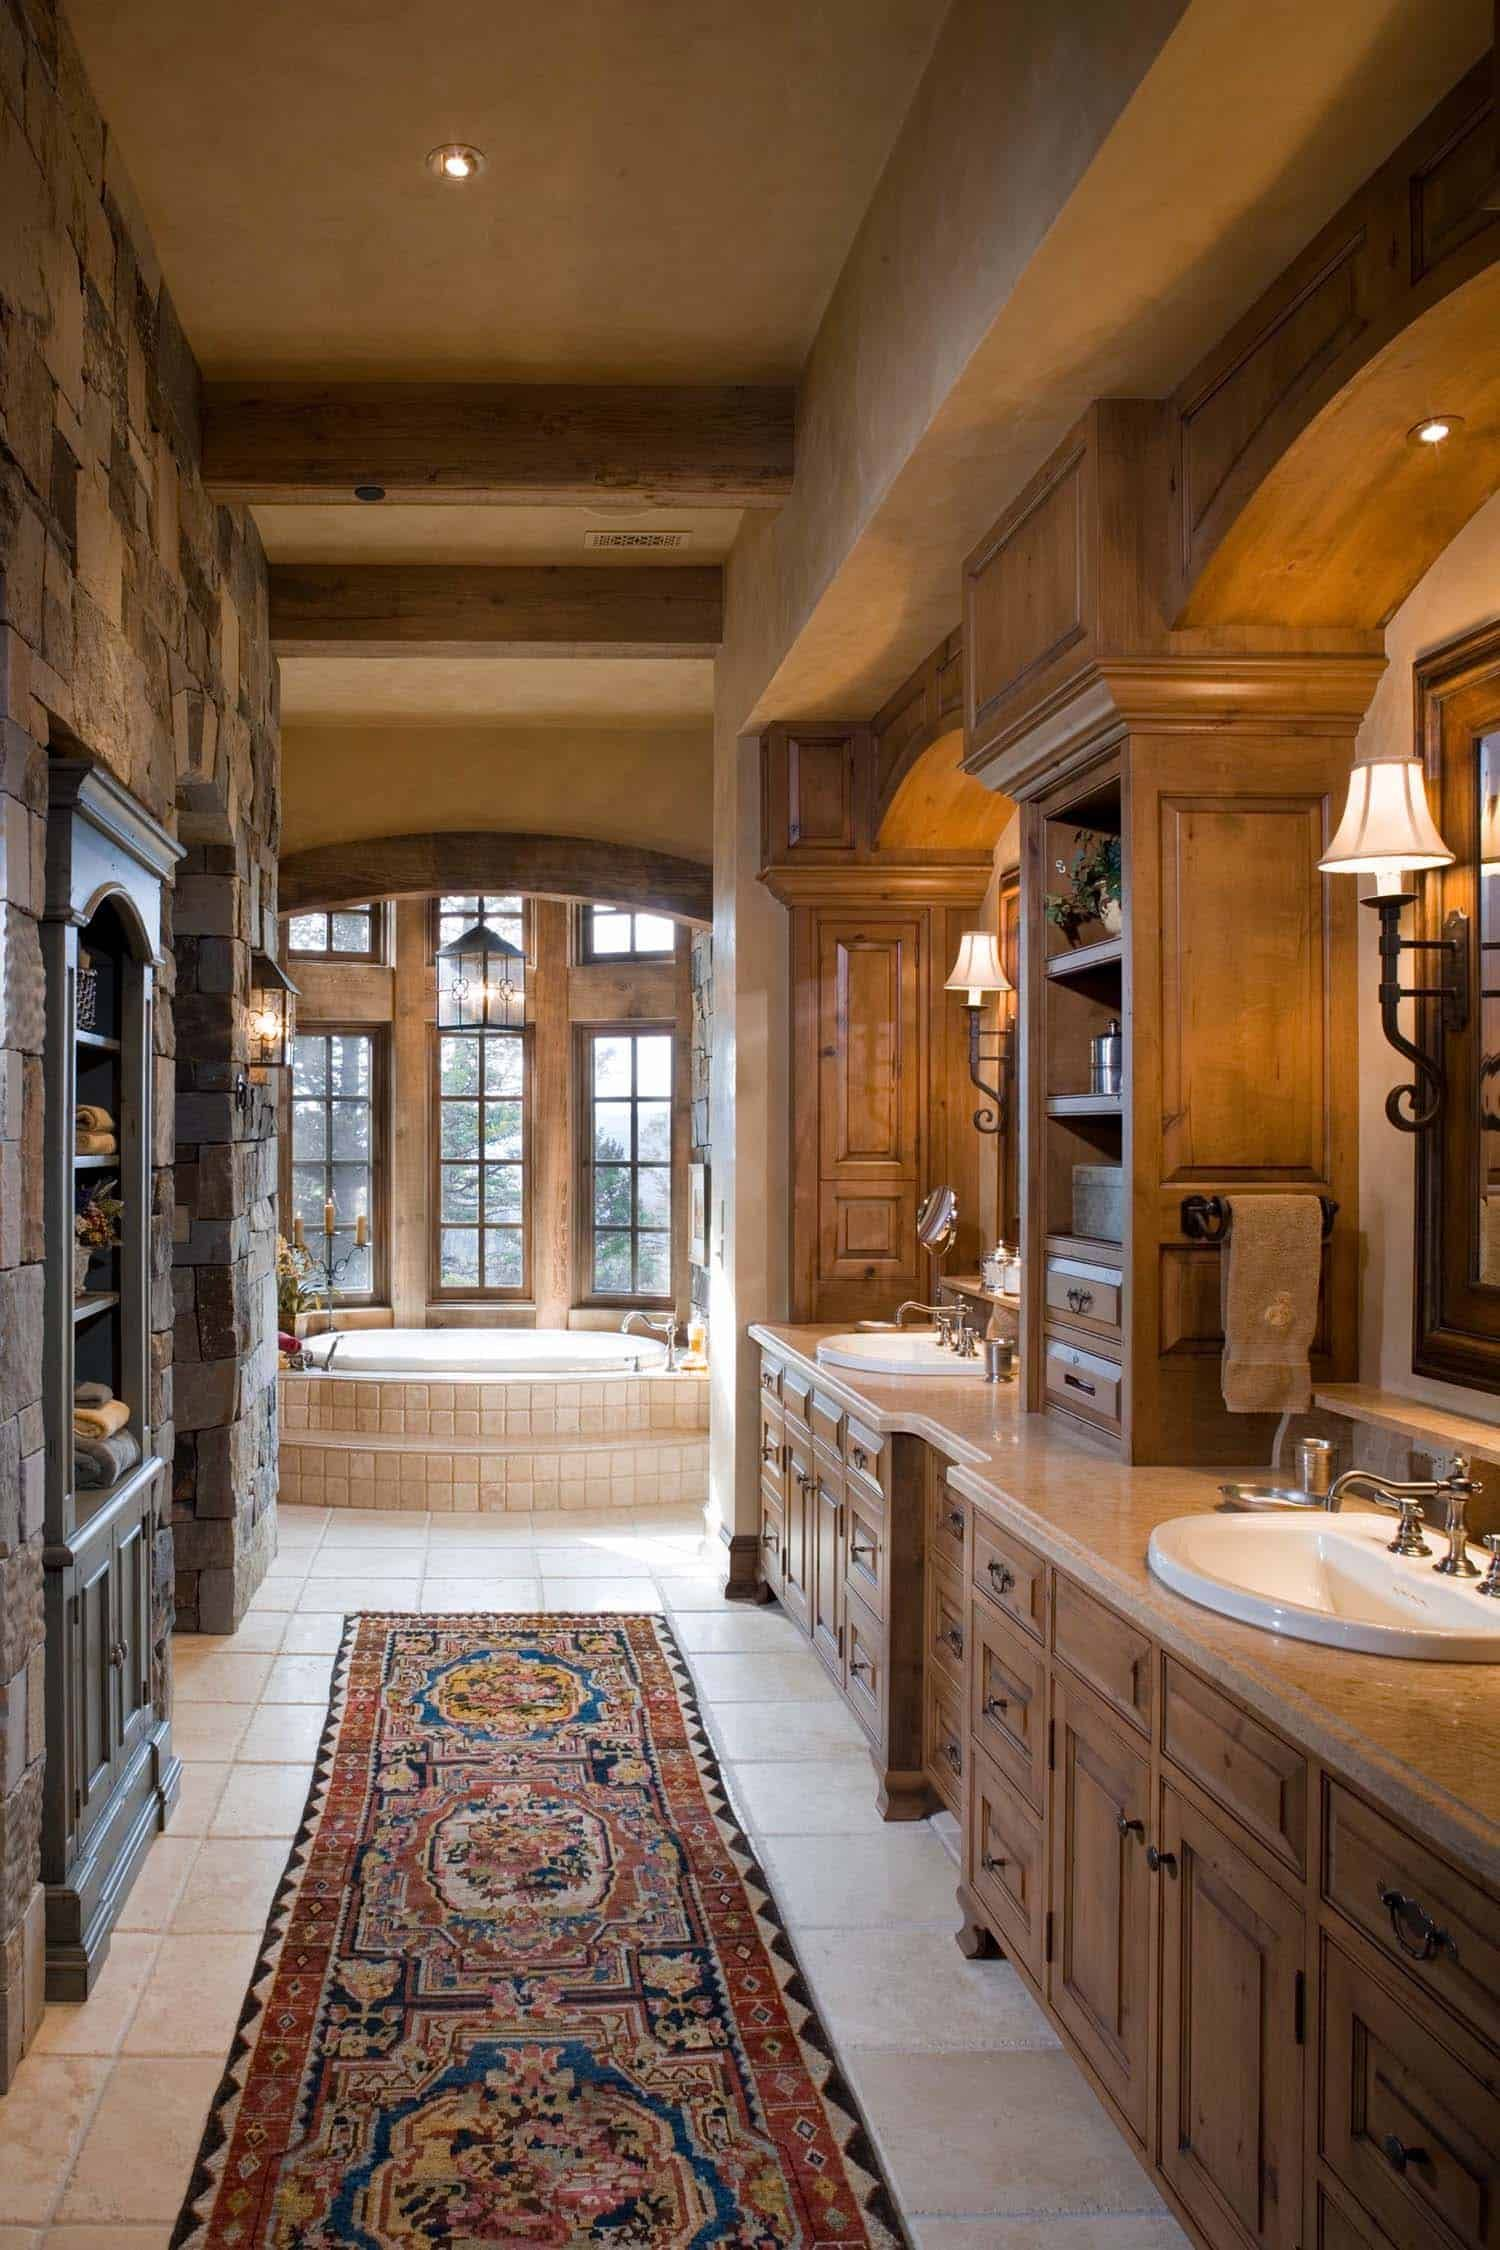 Exquisite Big Sky mountain retreat with timeless details #dreambathrooms